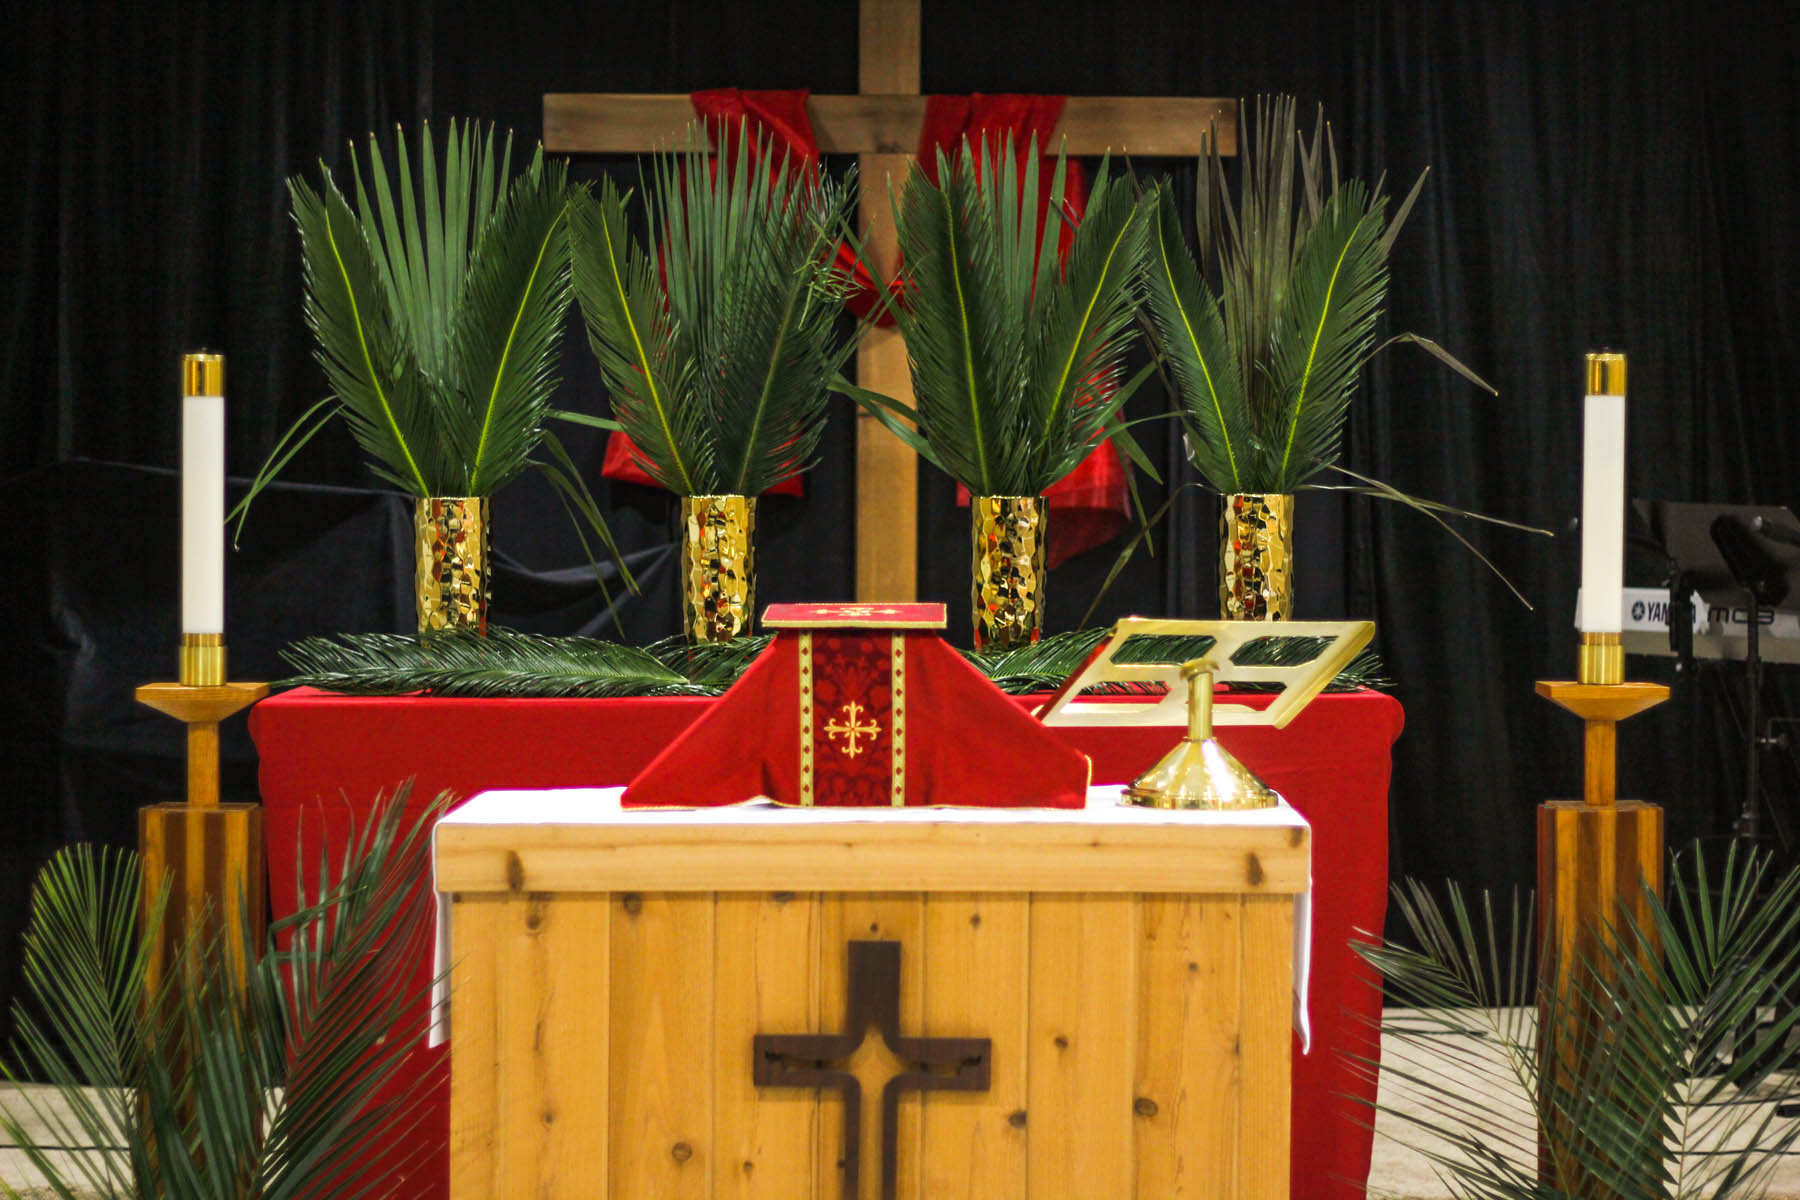 2019-04-14-WCEC-Palm-Sunday-012